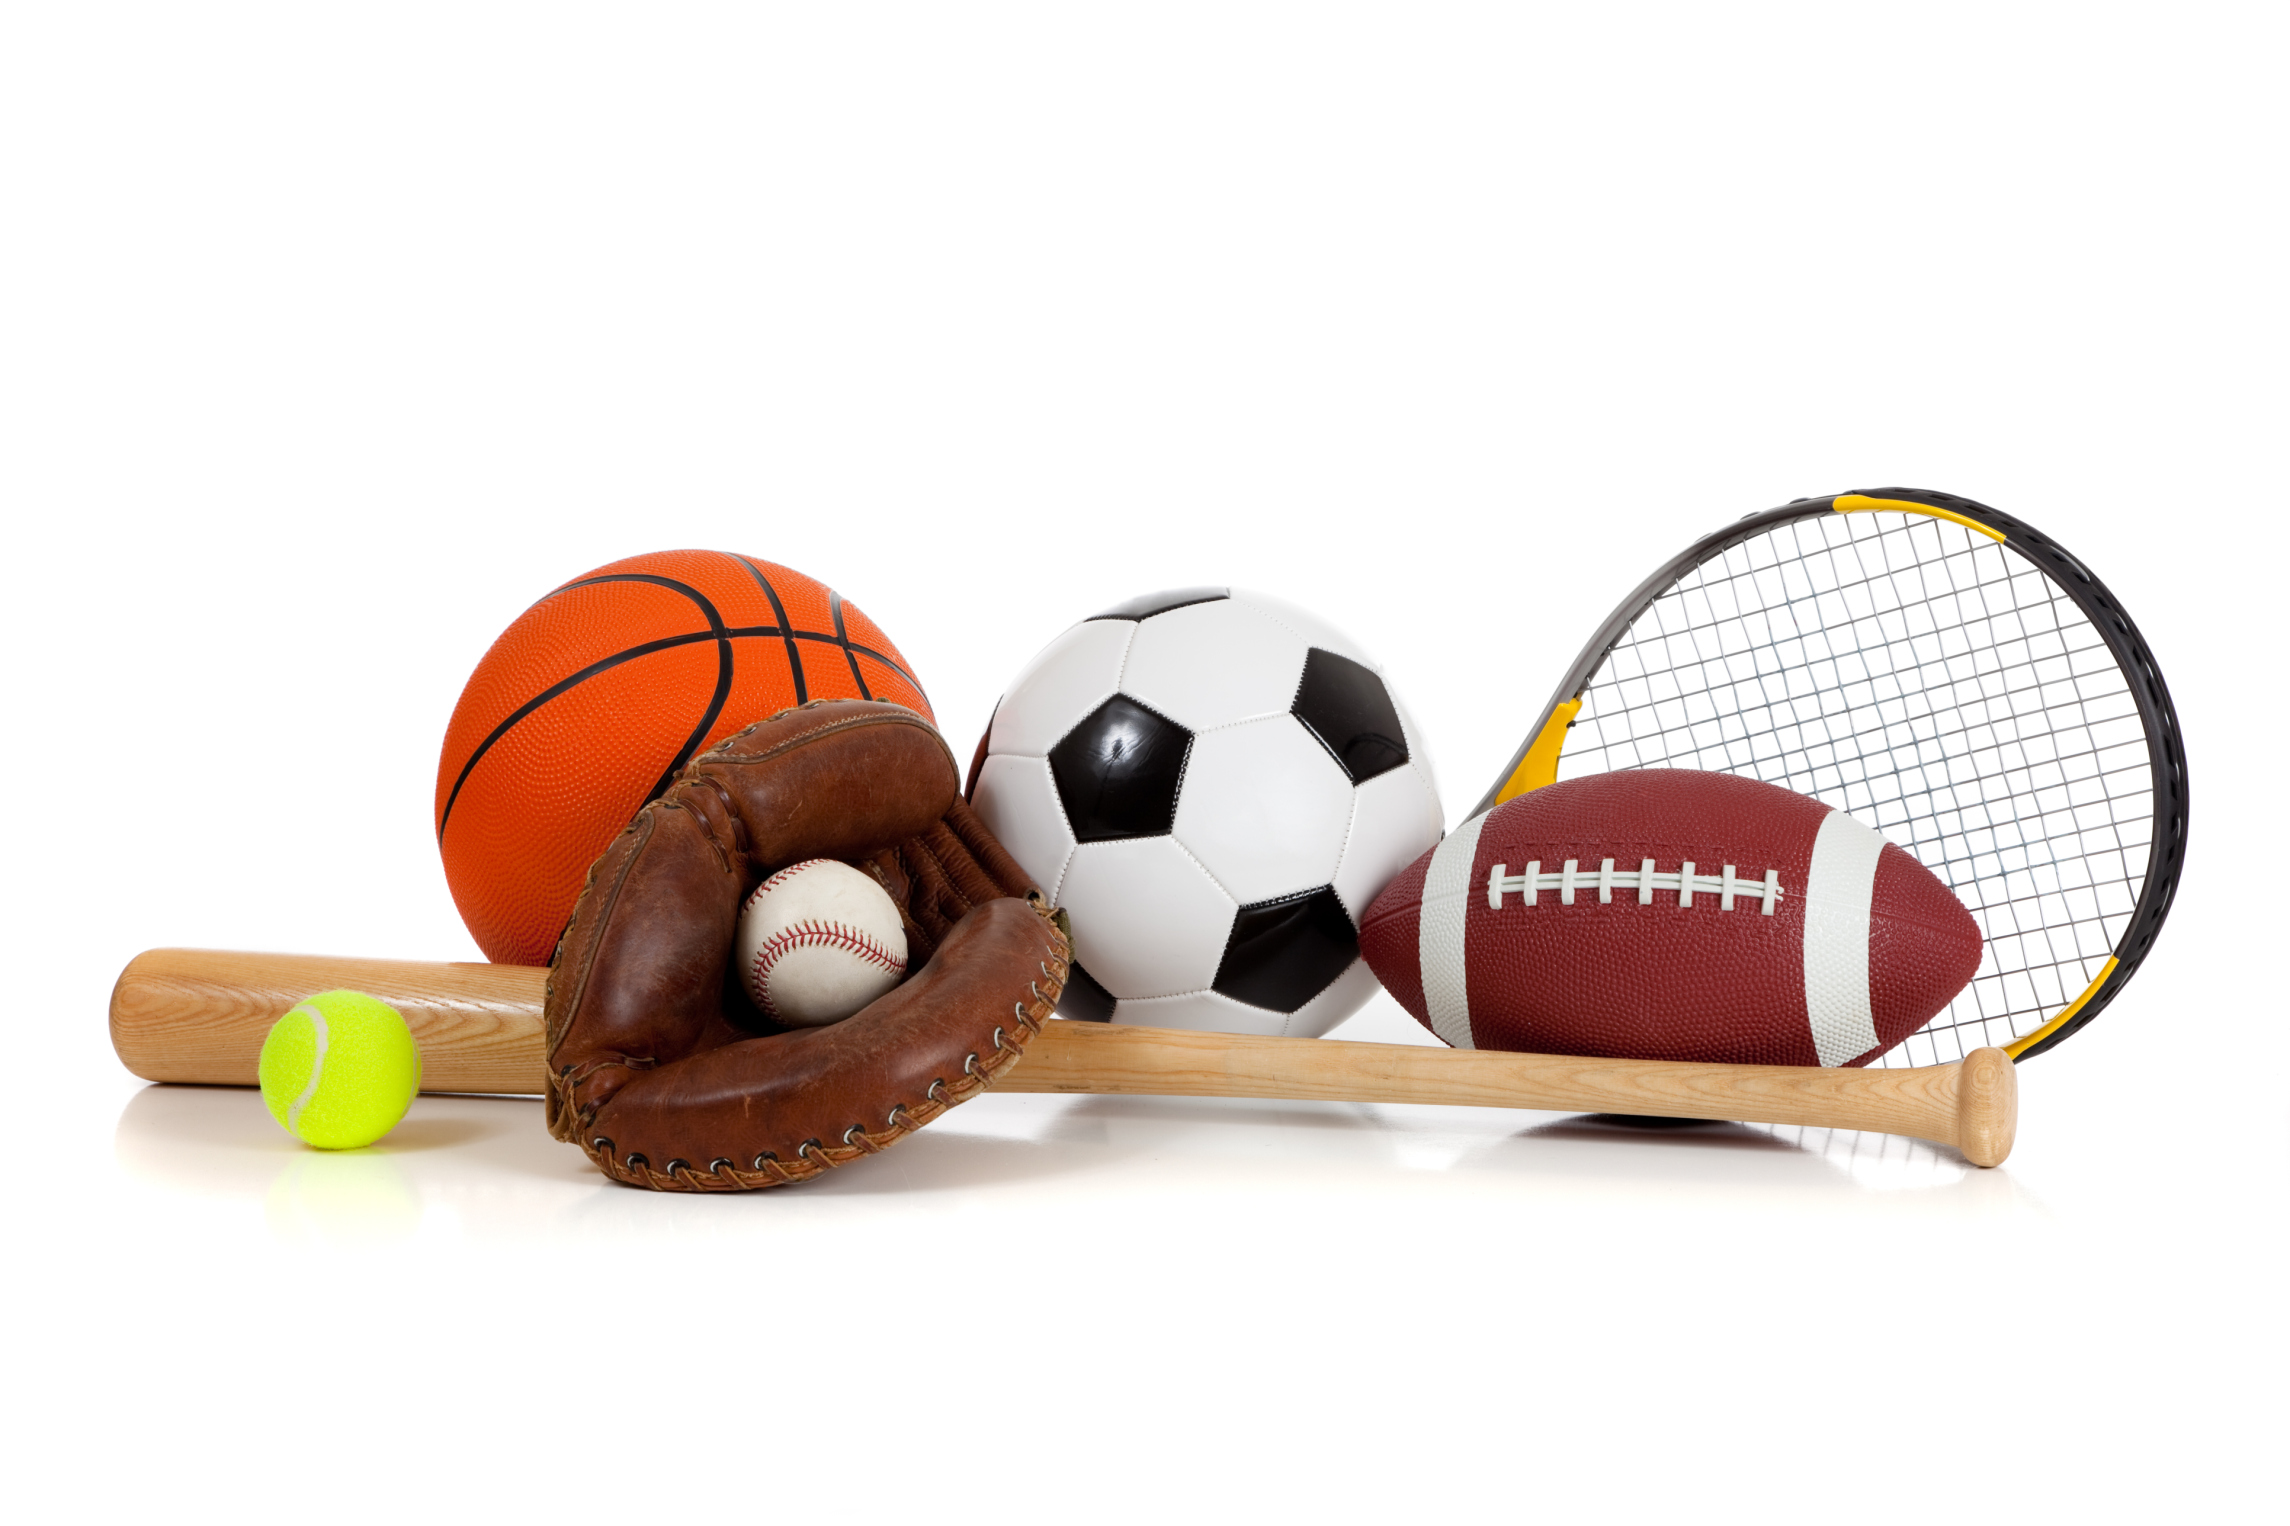 Offers A Wide Variety Of Recreational Youth Sports  We Offer Sports